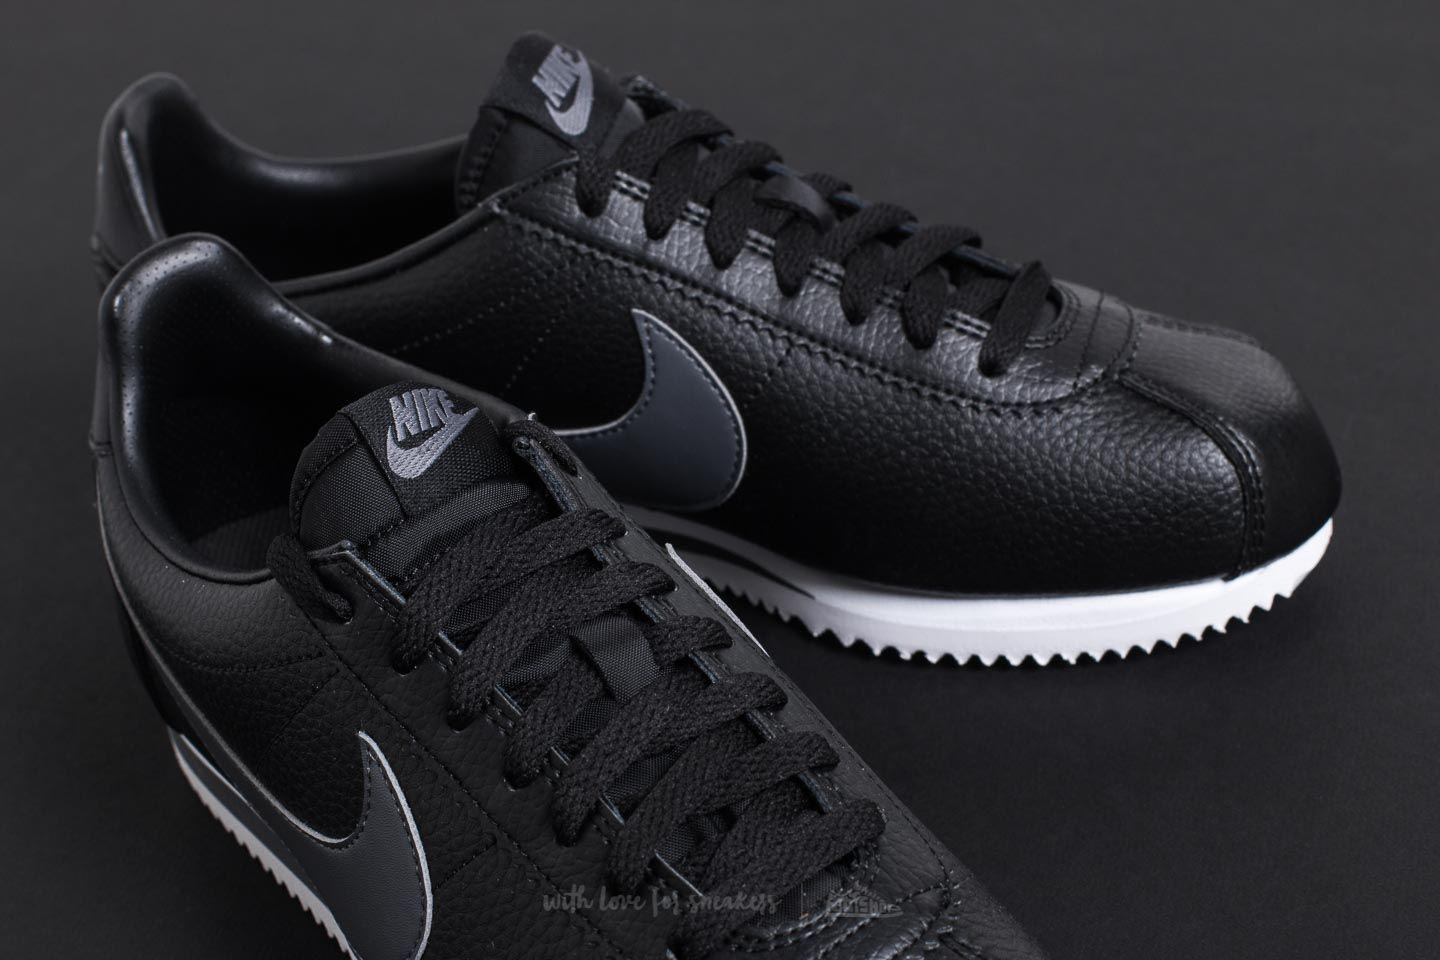 reputable site 36cfe bc2a4 Lyst - Nike Classic Cortez Leather Black Dark Grey-white in